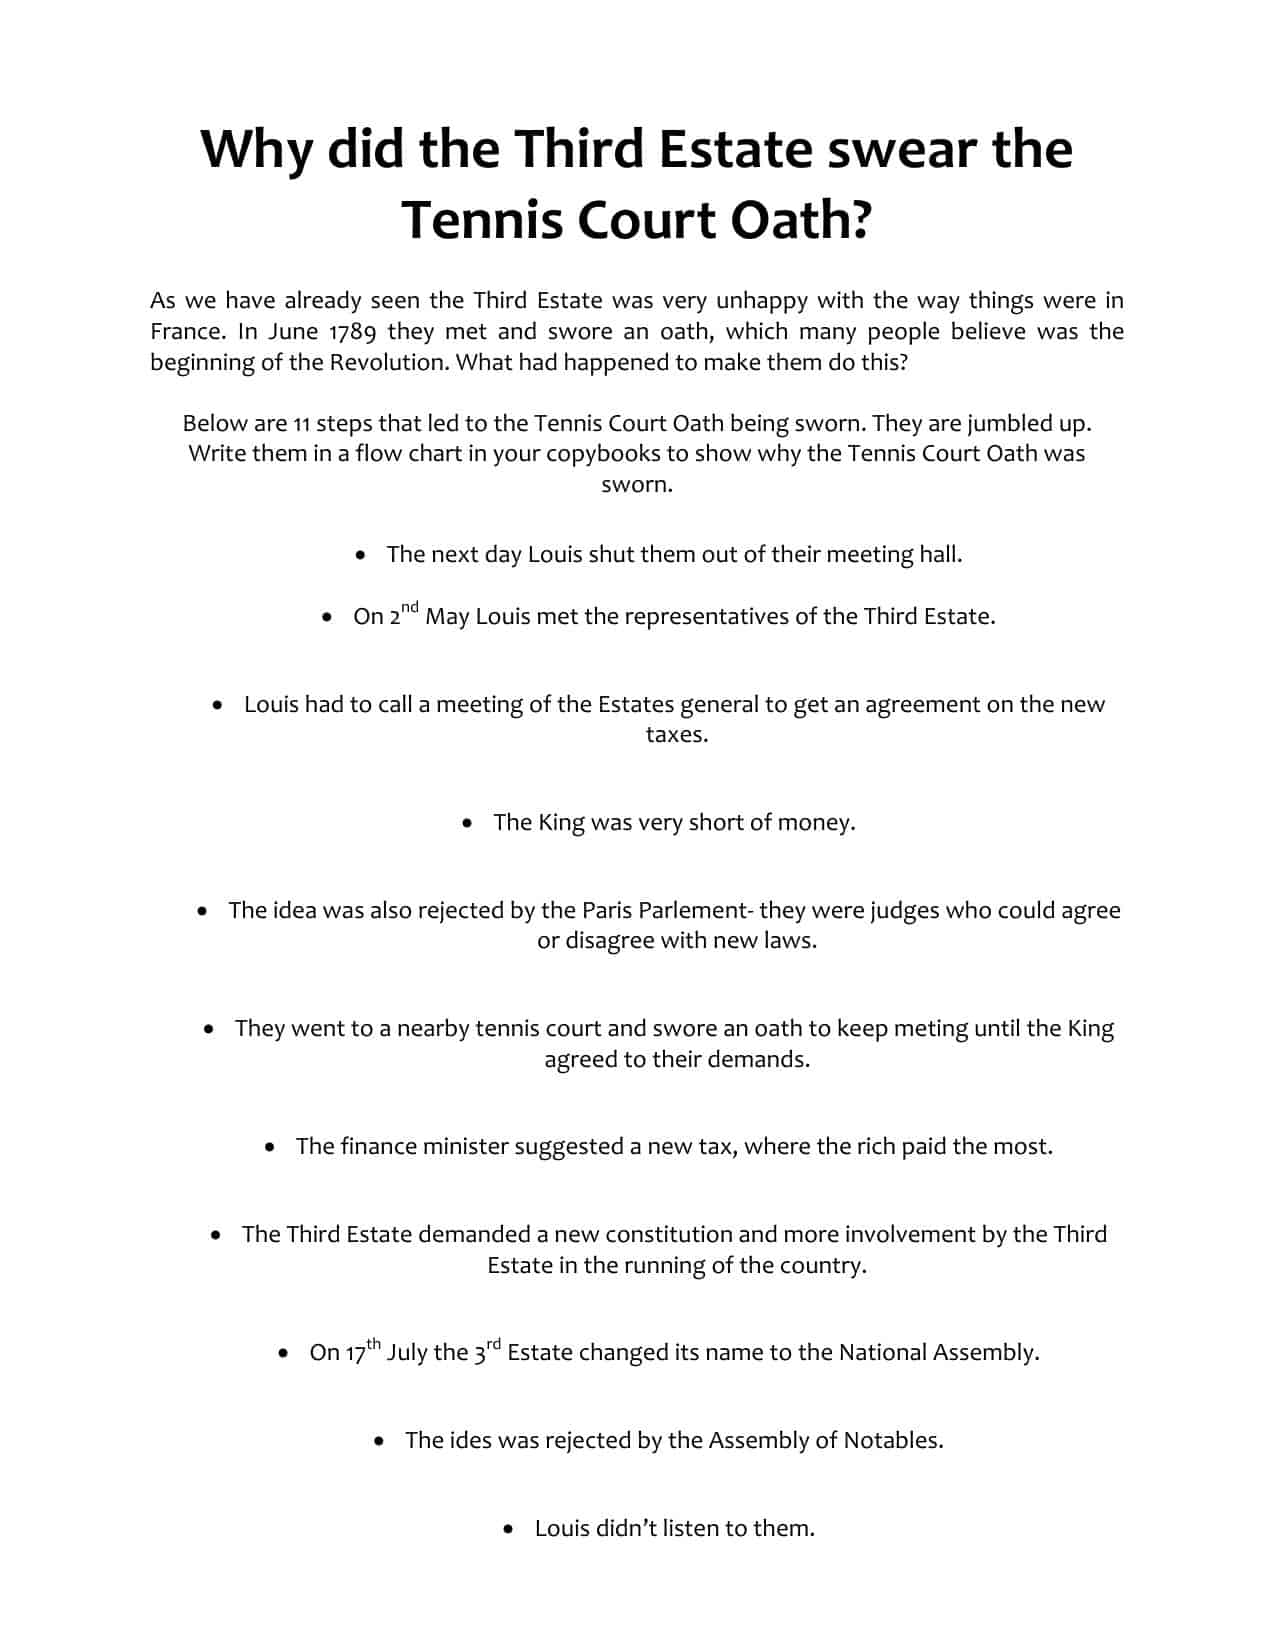 Third Estate Tennis Court Oath Ks3 Worksheet Flow Chart Task. Download Third Estate Tennis Court Oath Flow Chart Task. Wiring. 1789 Estates General Diagram At Scoala.co